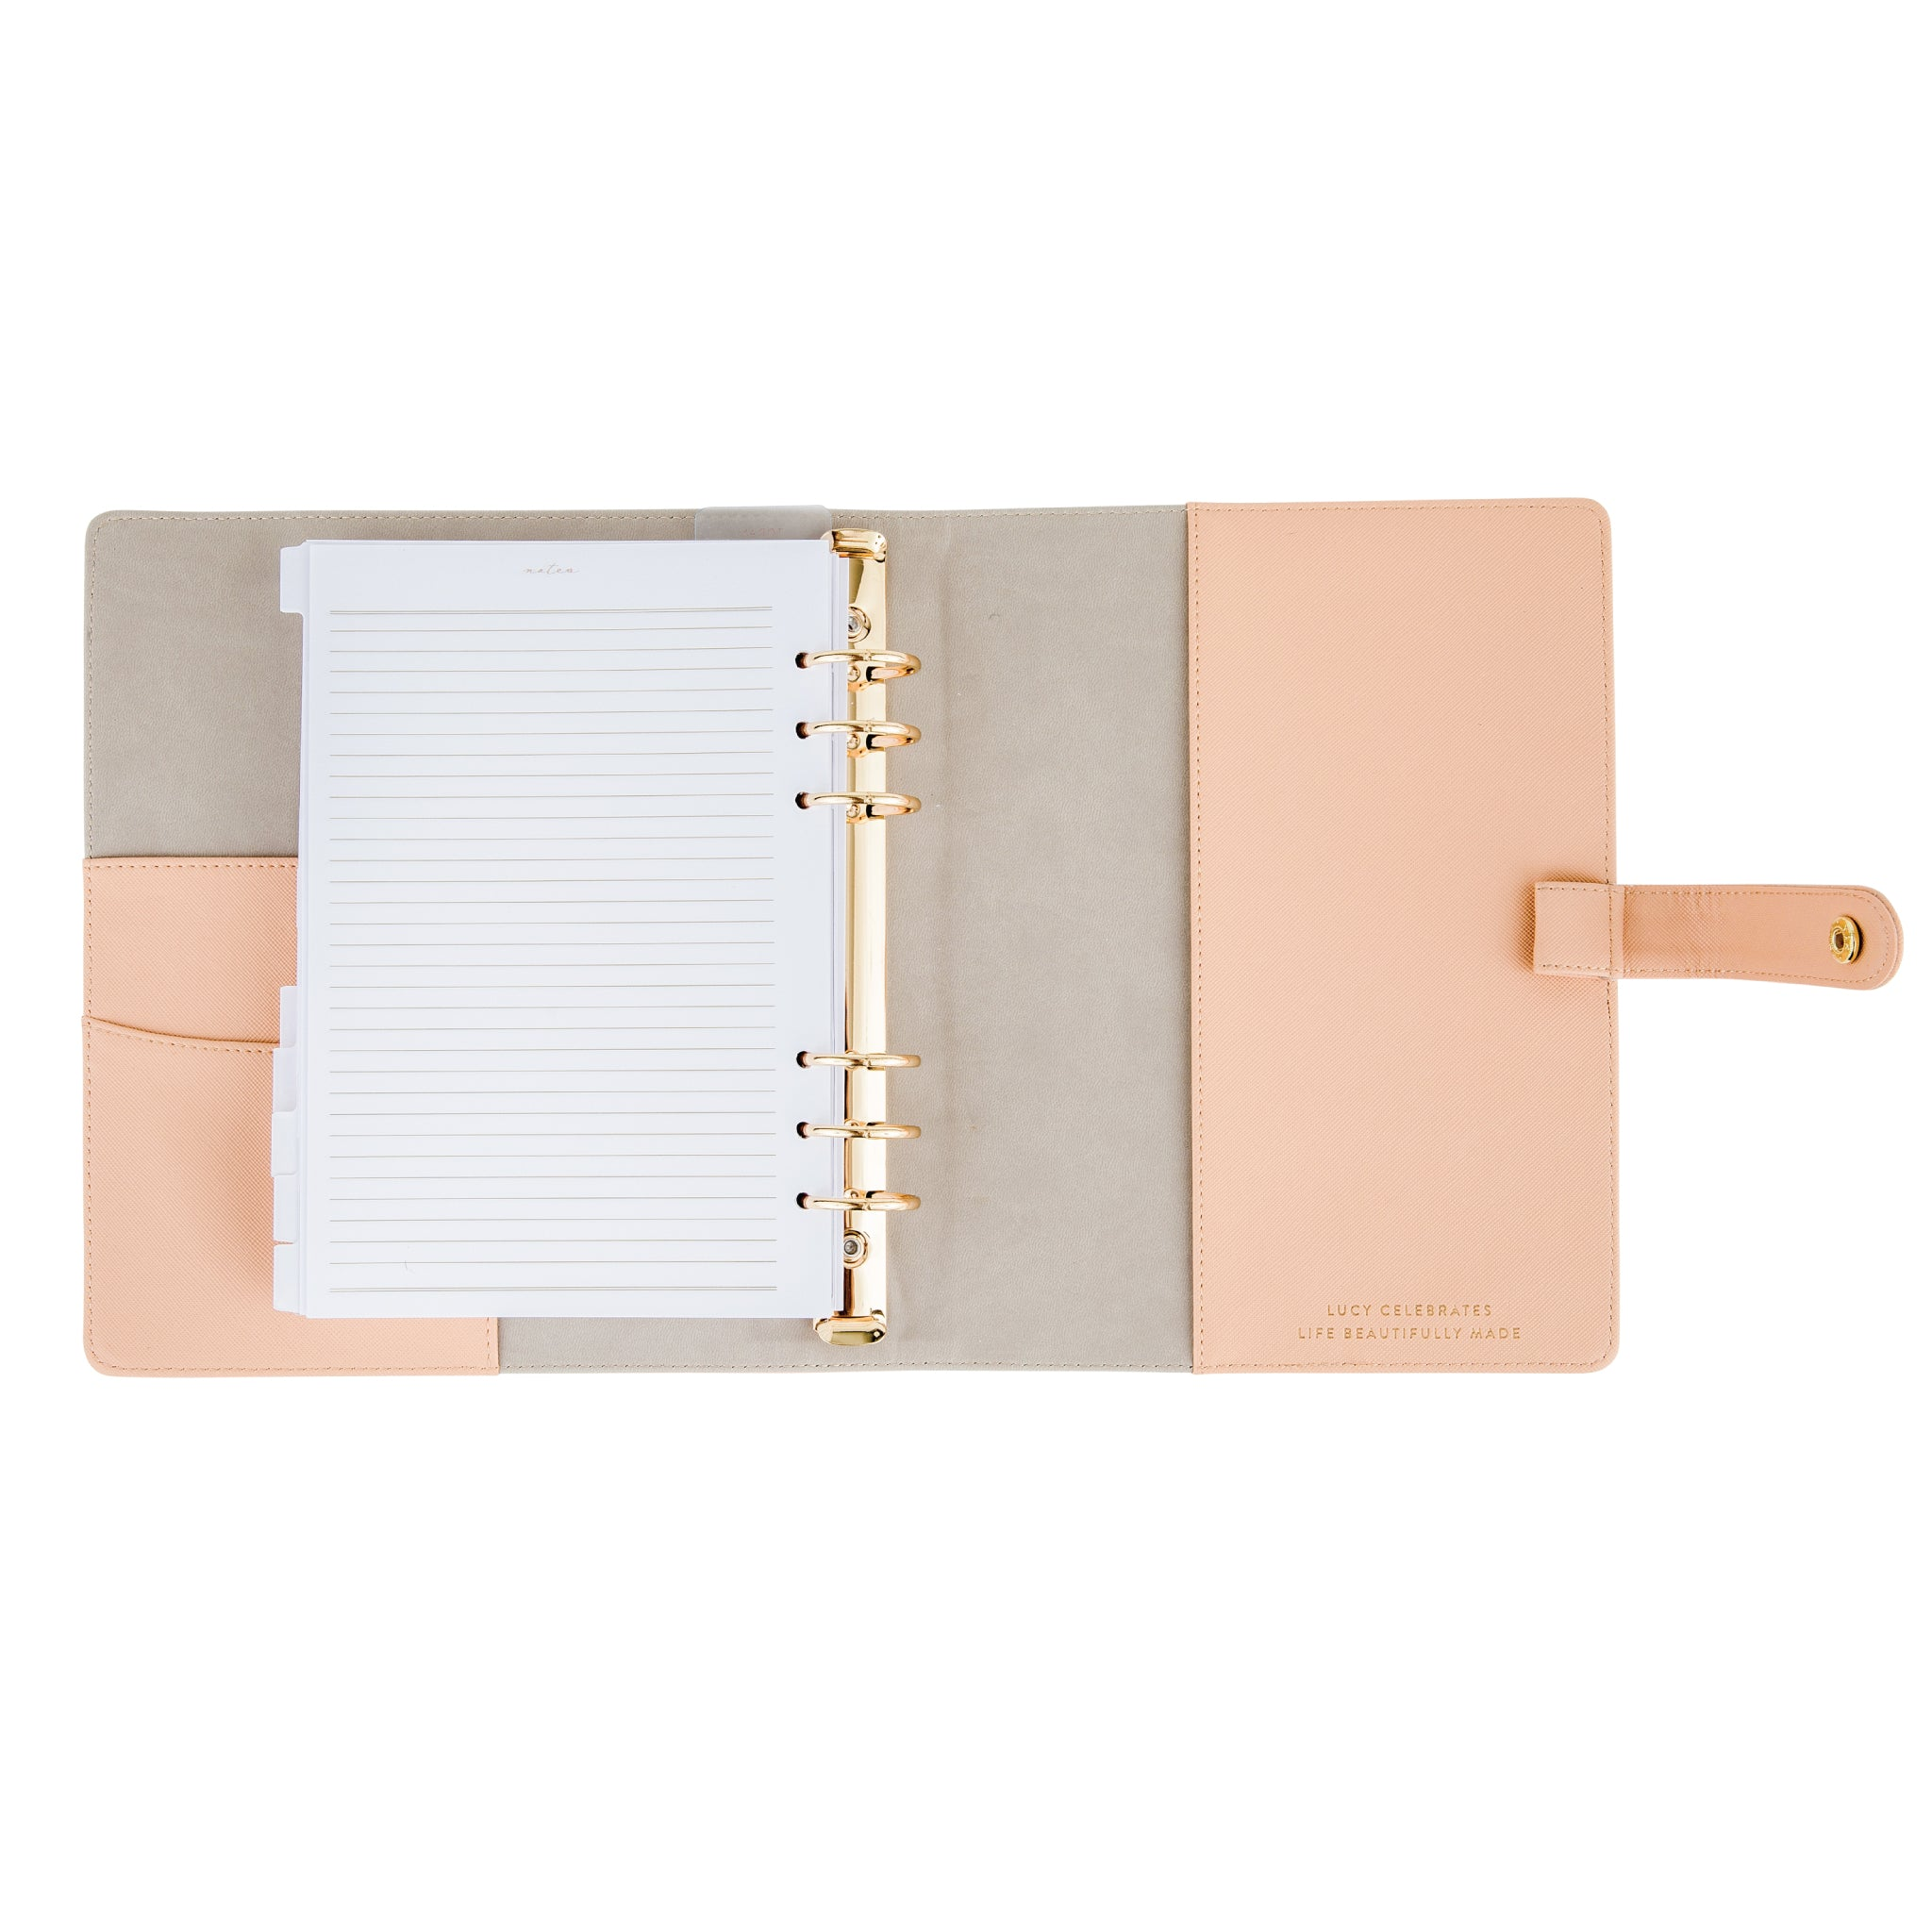 2019 Intentional Planner® Set, Blush Leatherette Binder